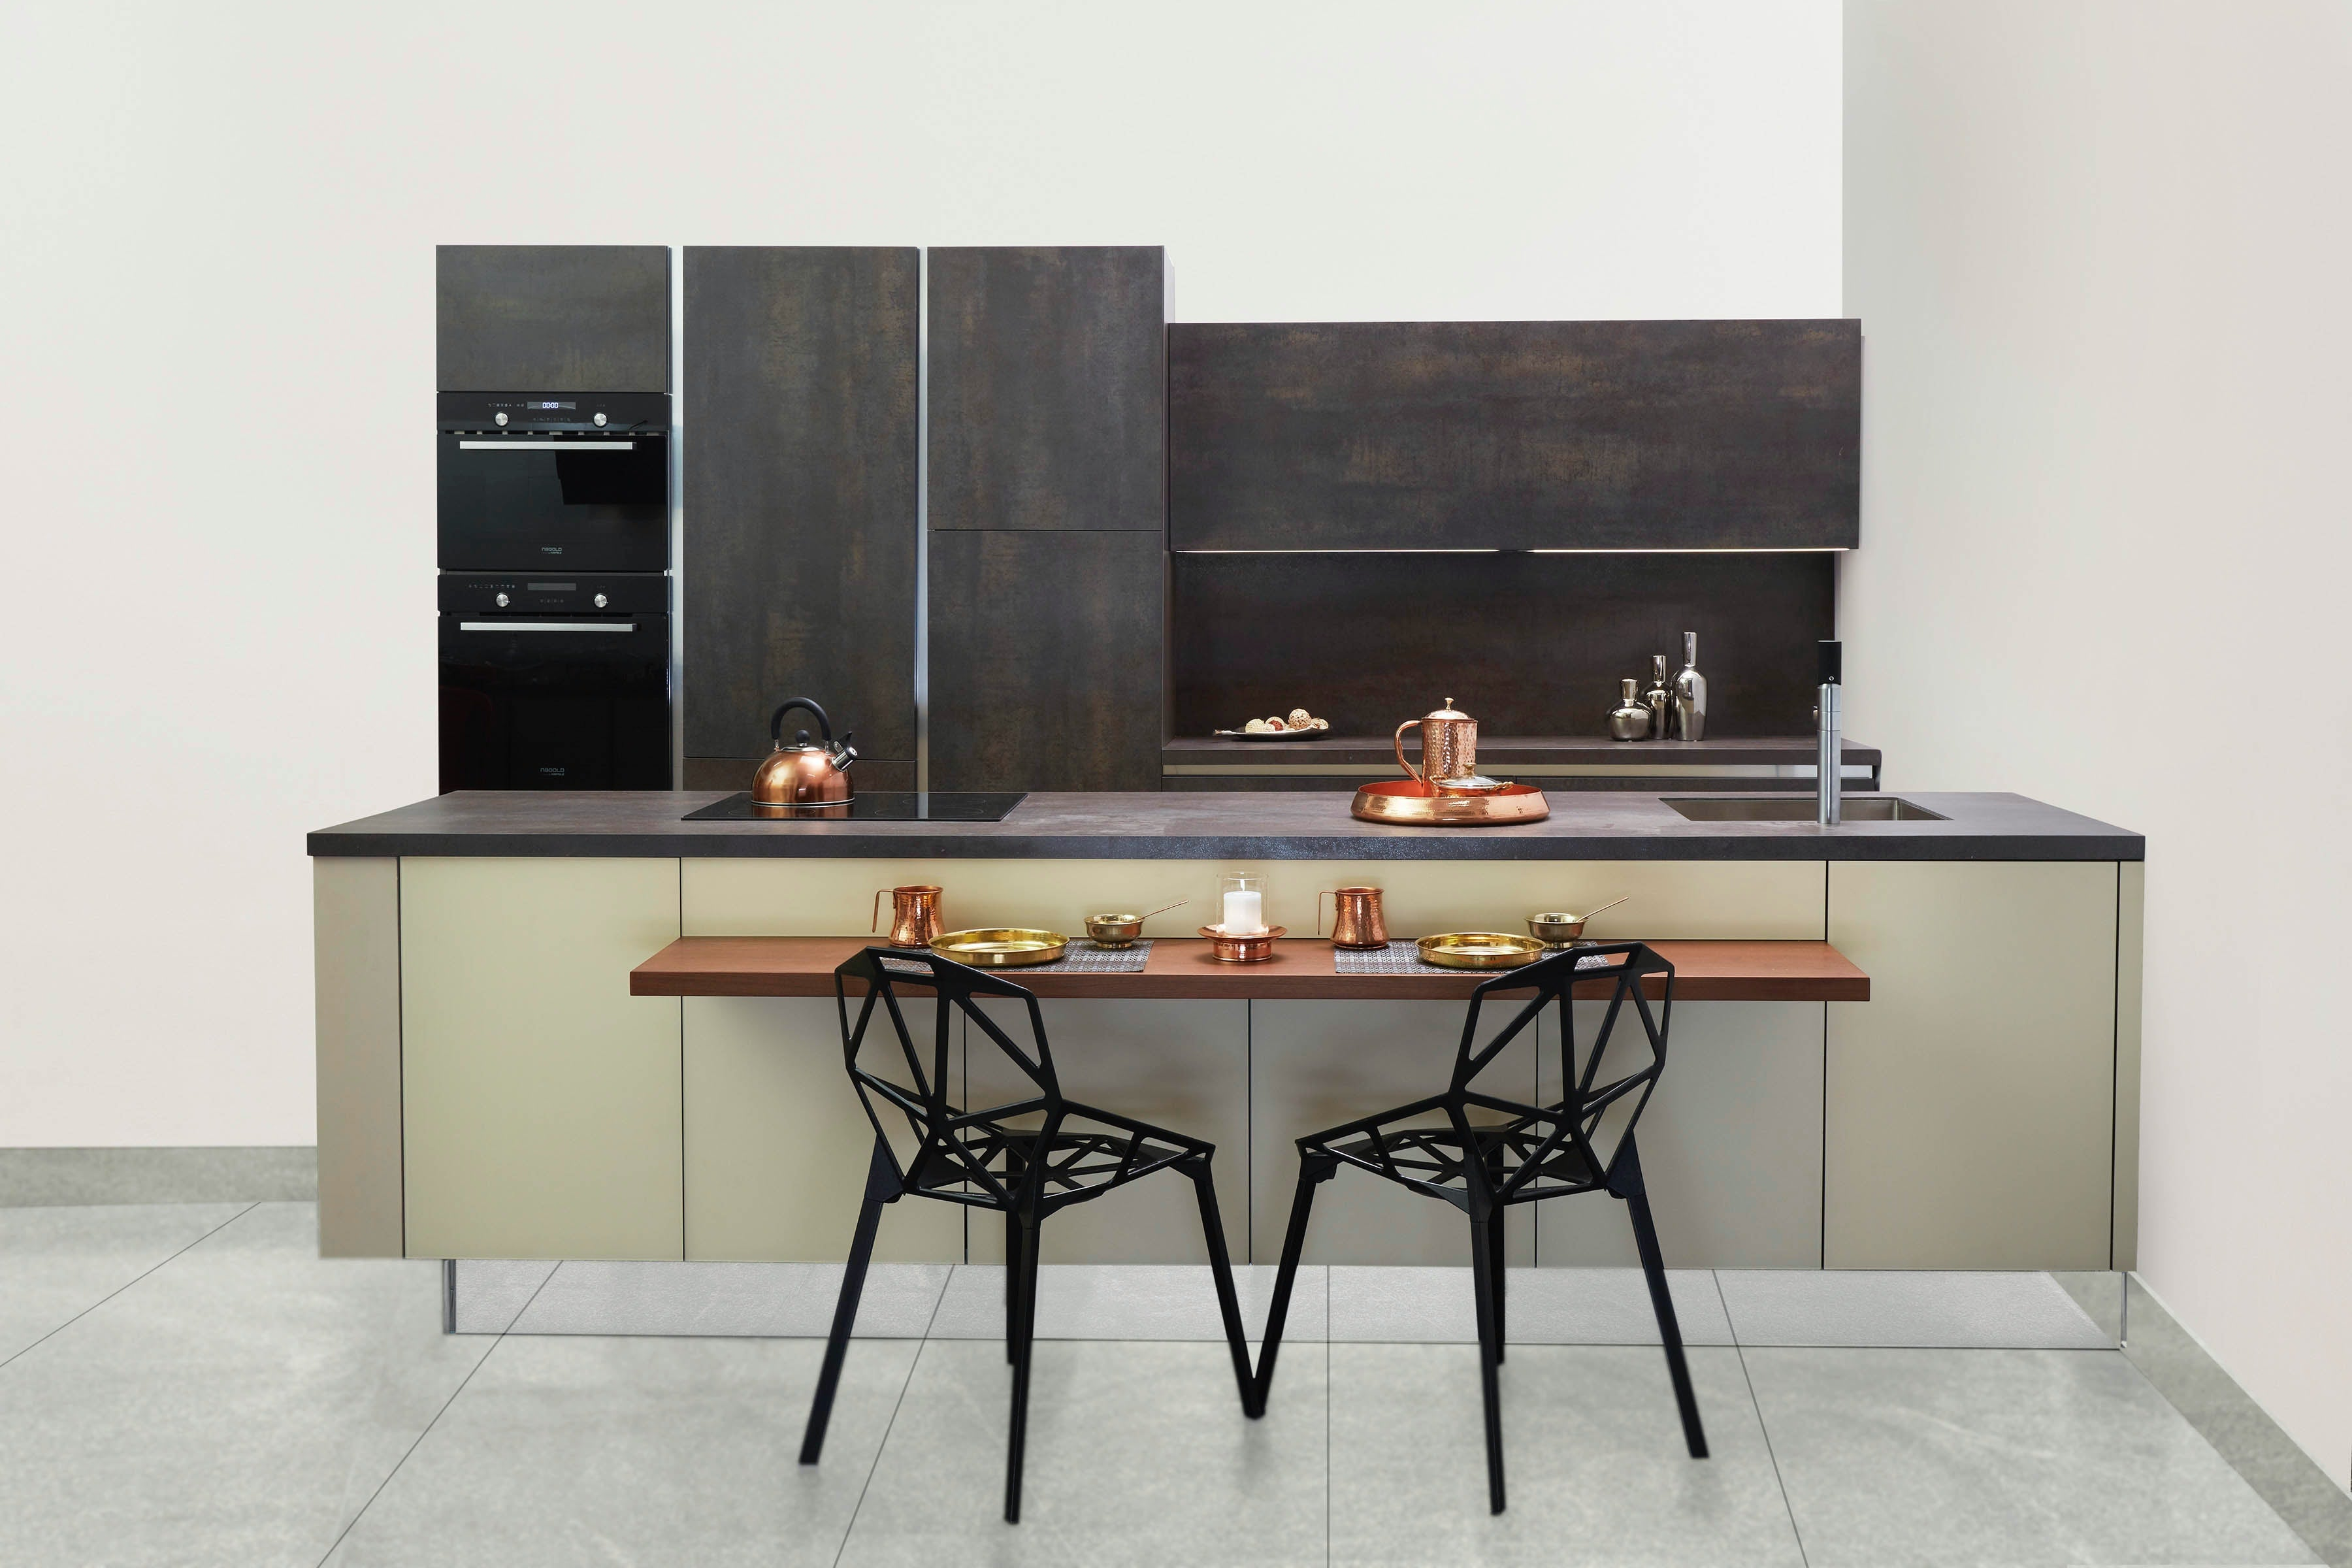 Different styles of design of the kitchen reflect the different preferences of the owner.